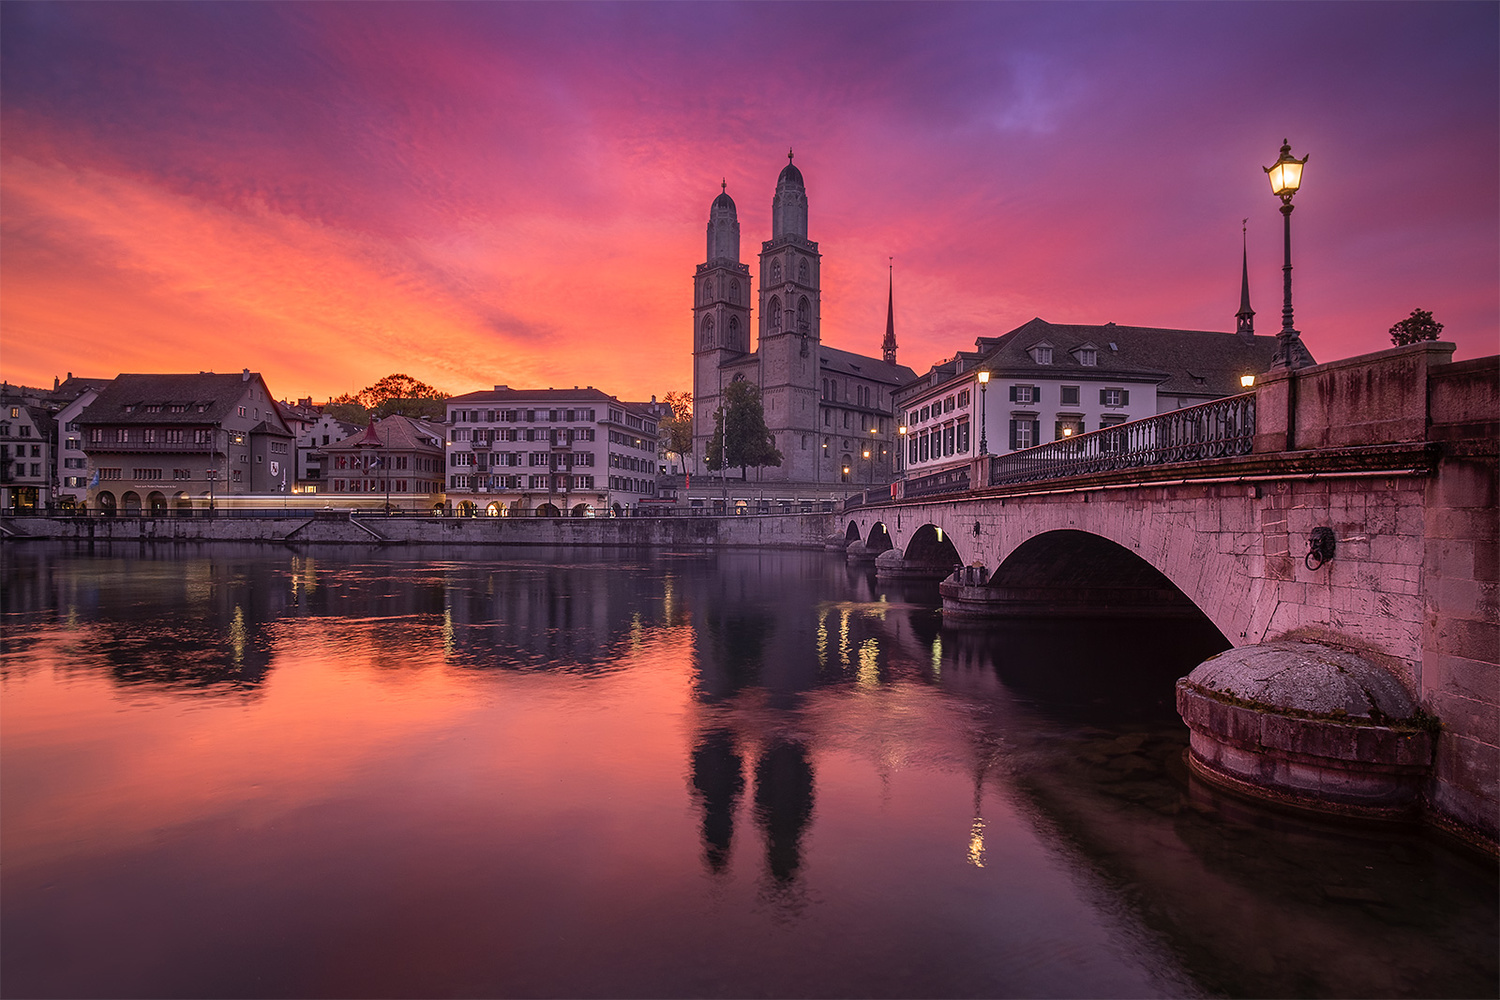 Grossmünster church, Zurich by Anton Galitch